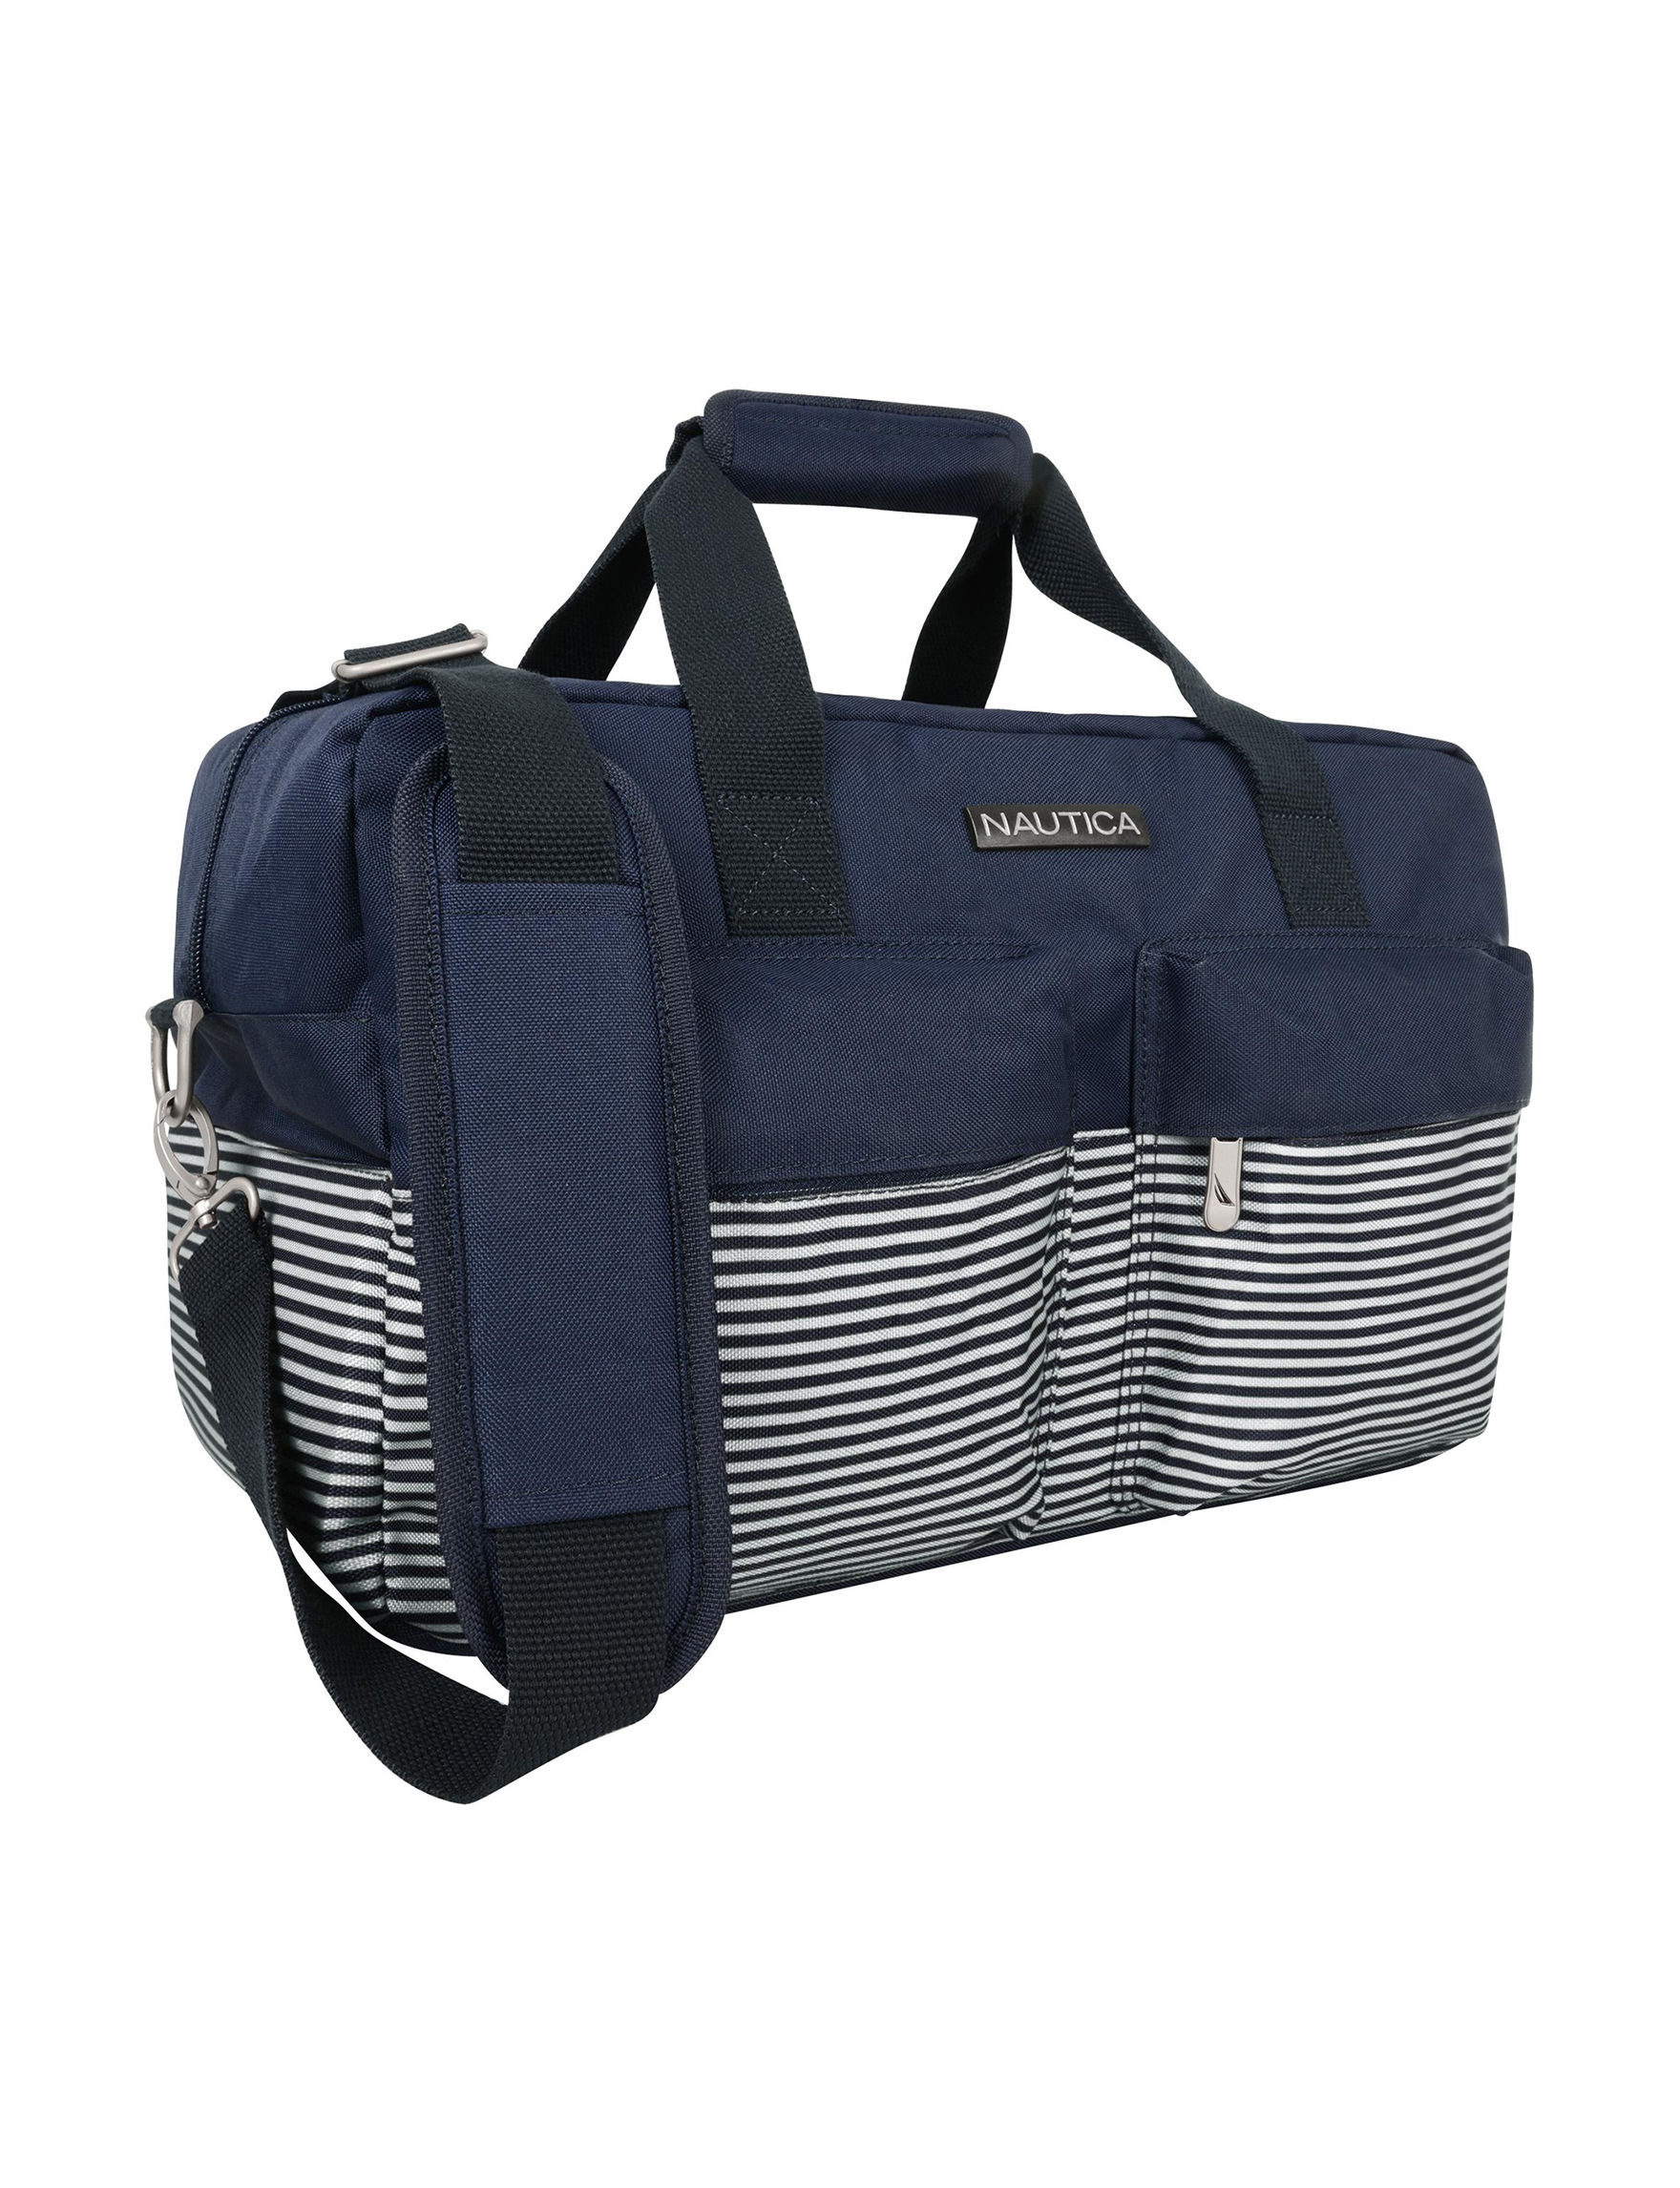 Nautica Navy Carry On Luggage Duffle Bags Weekend Bags